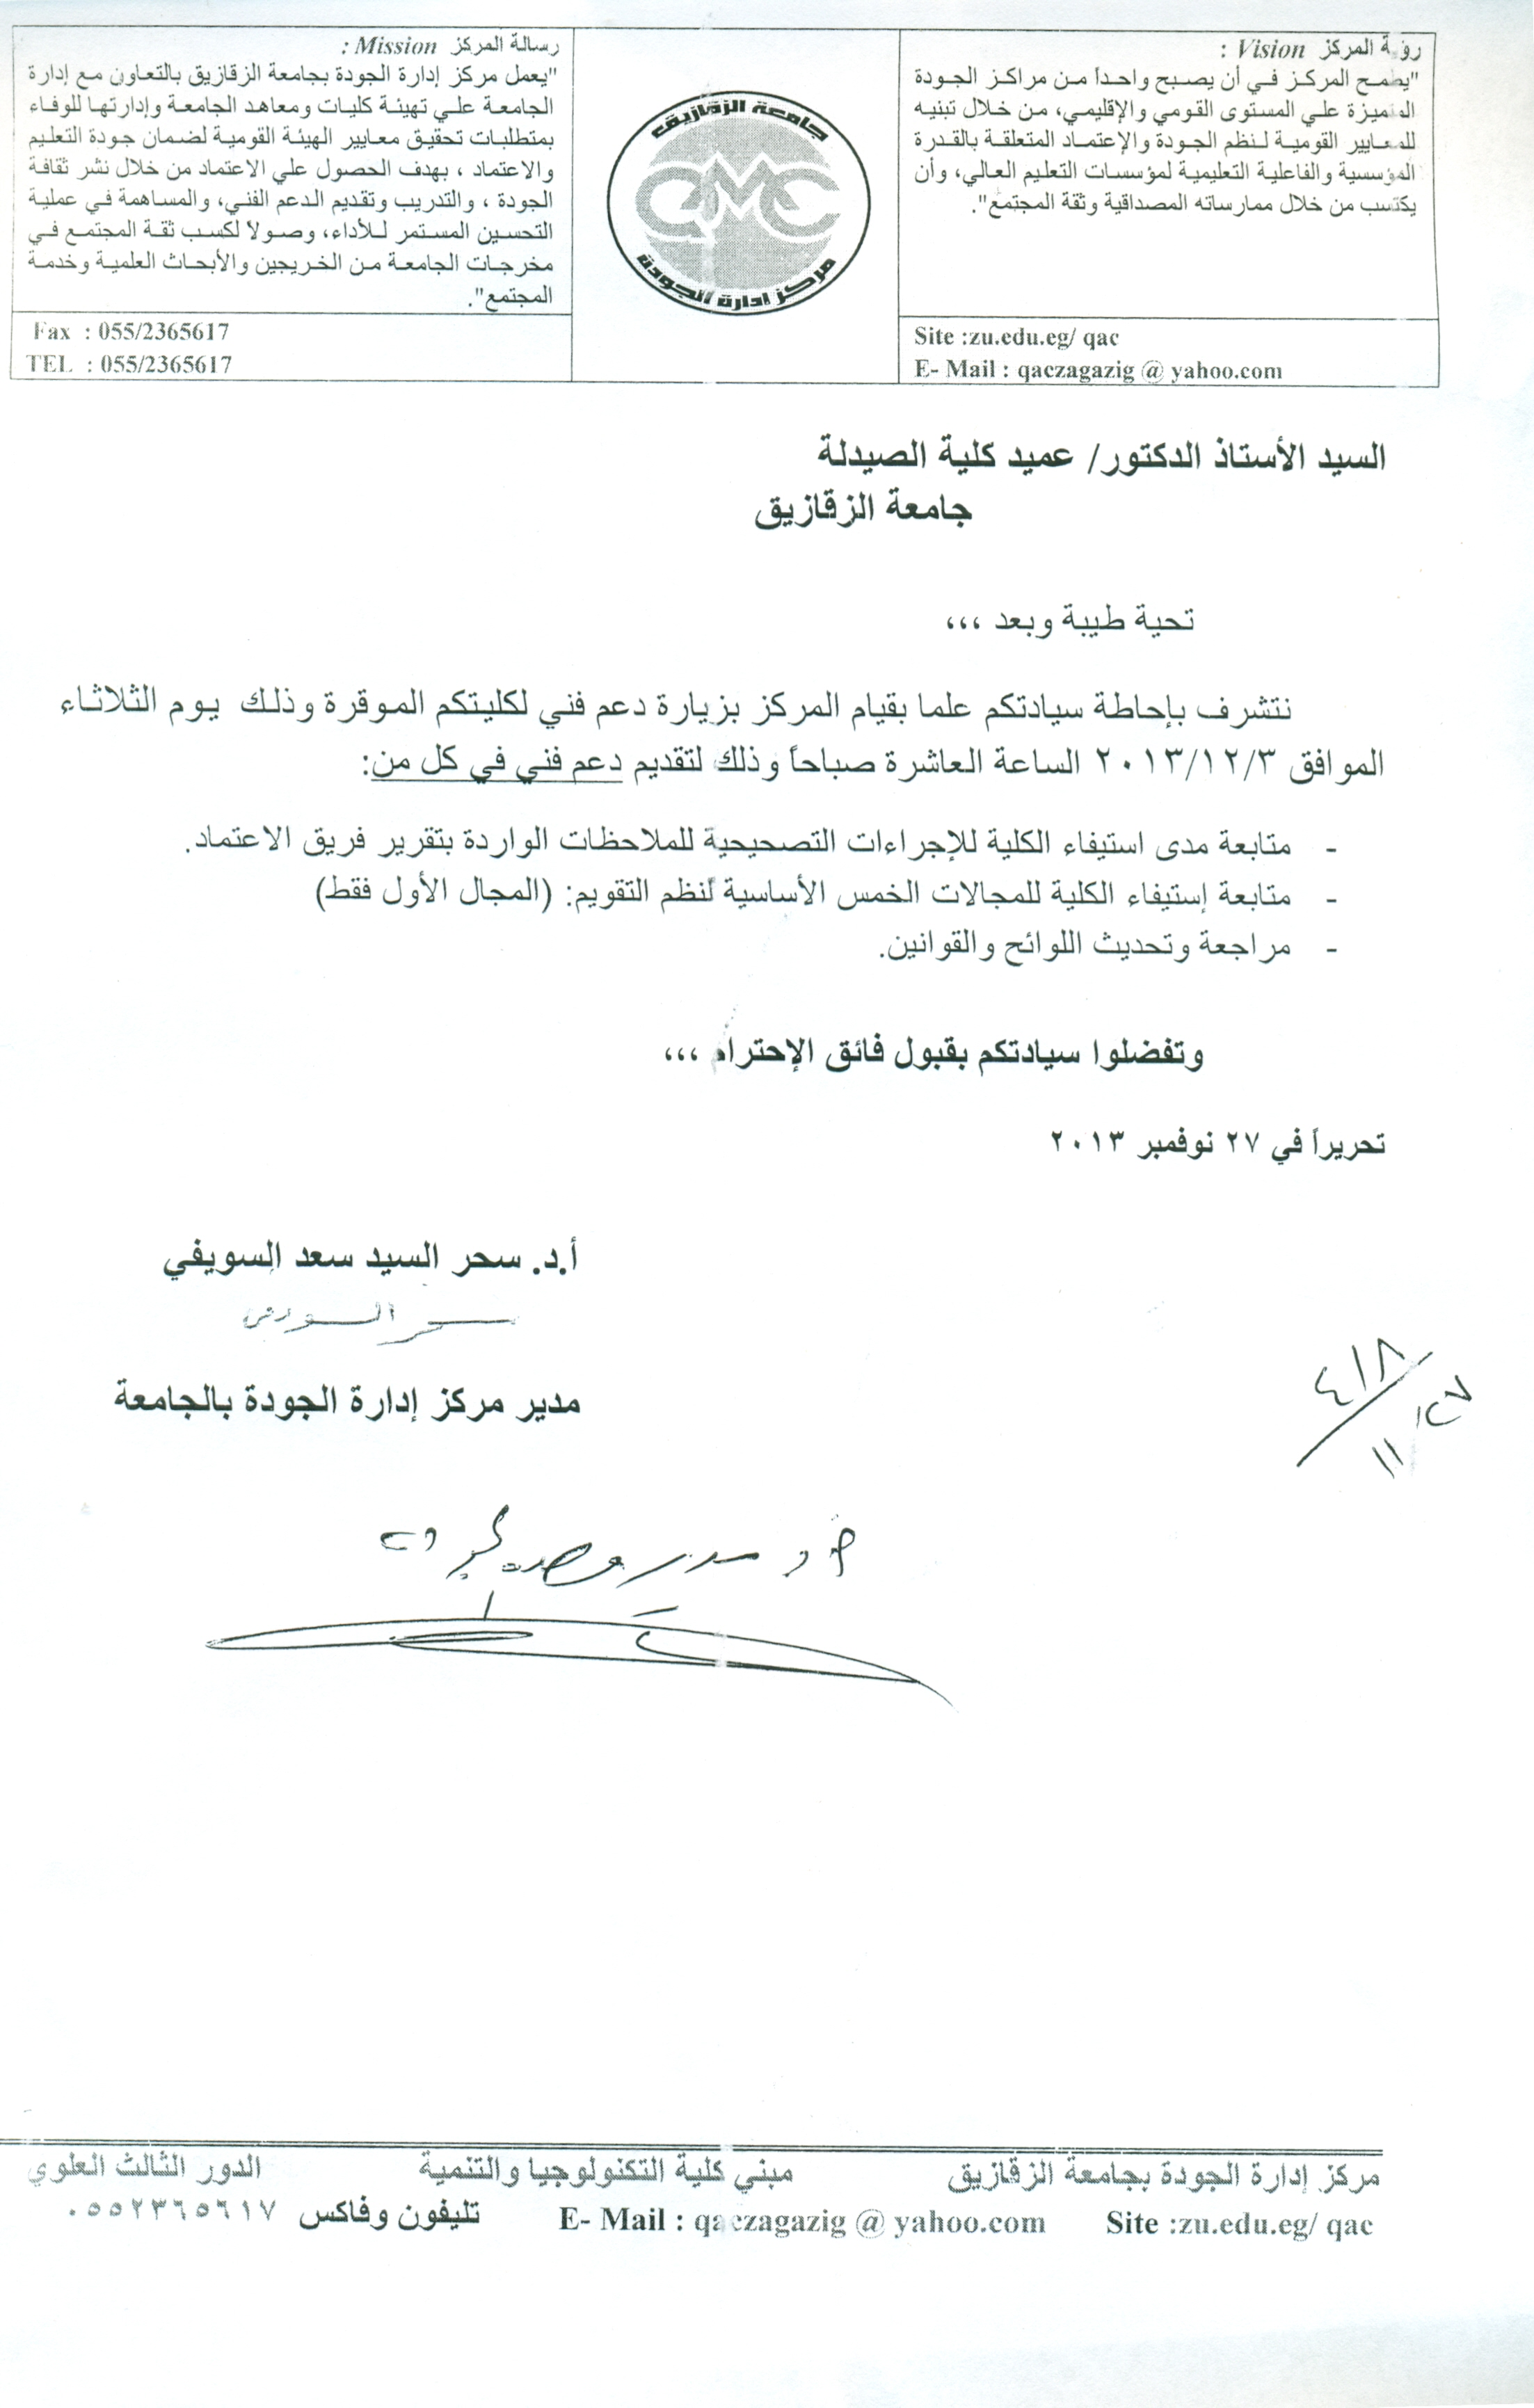 Visit TMC Quality and Accreditation, Ministry of Higher Education of the Faculty of Pharmacy monday 2/12/2013, 3/12/201